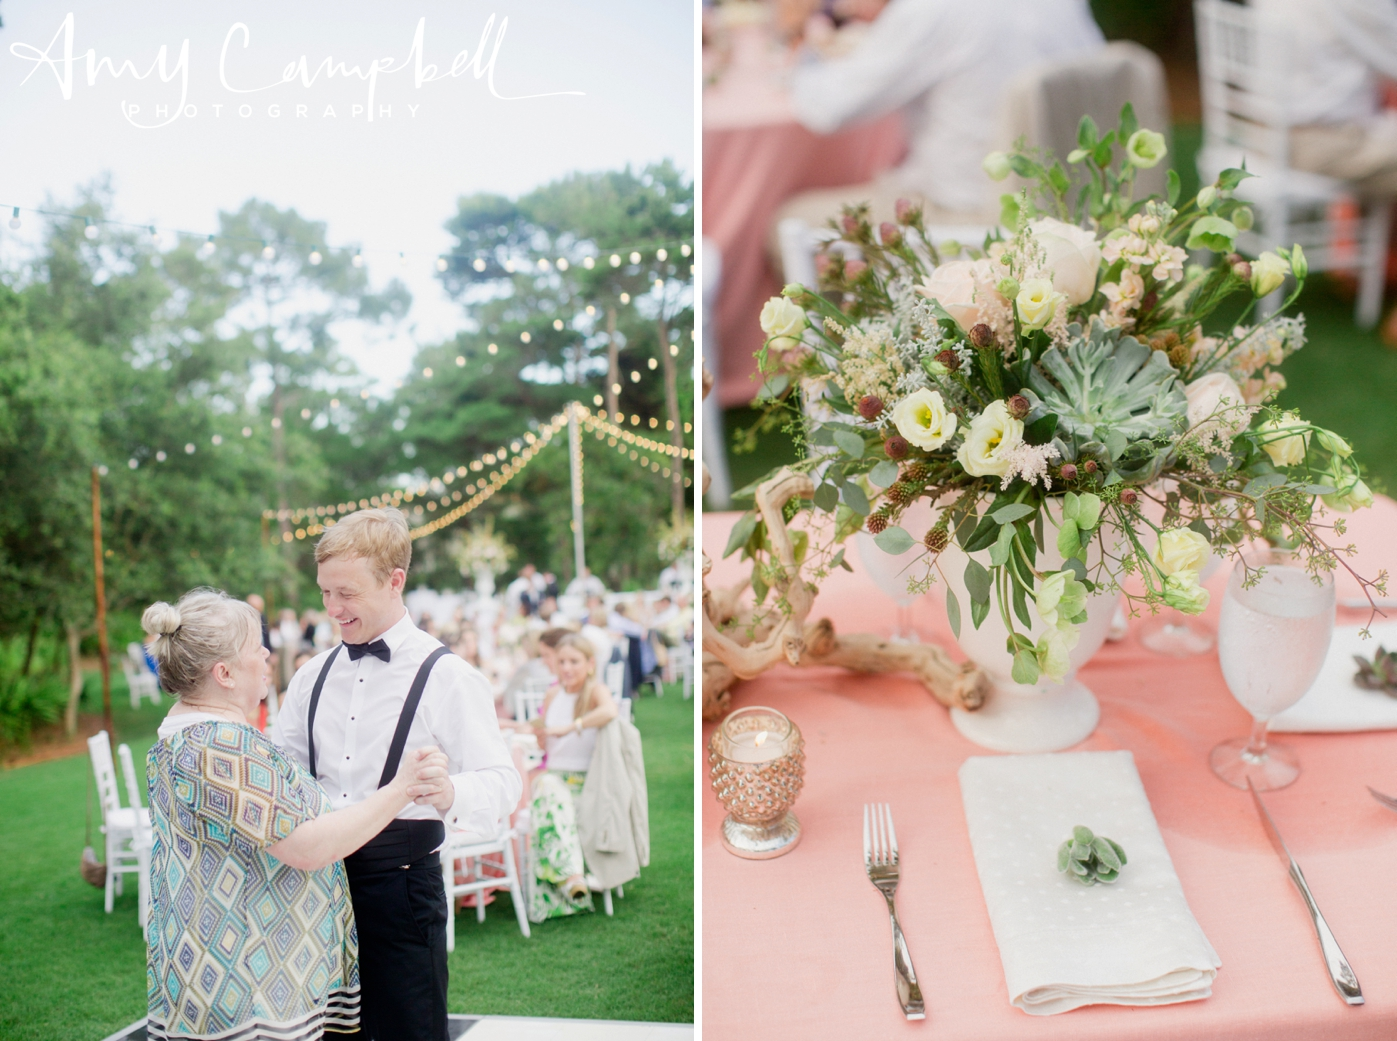 emilyreed_wed_blog_amycampbellphotography_0088.jpg